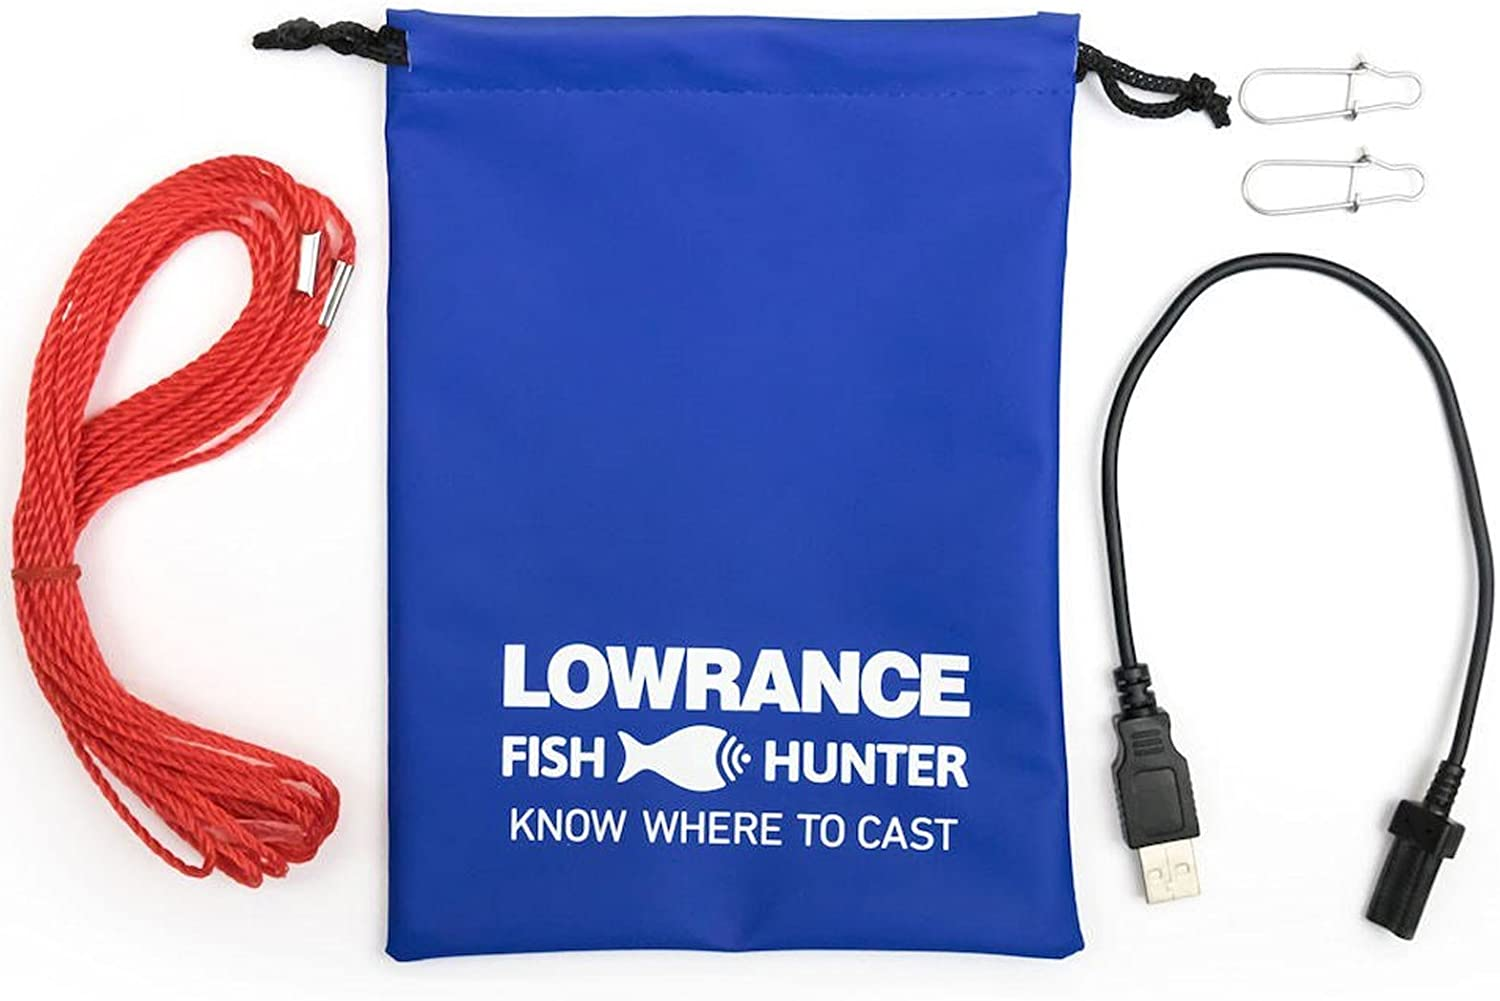 Lowrance 000-14364-001 Fish Finder Accessories